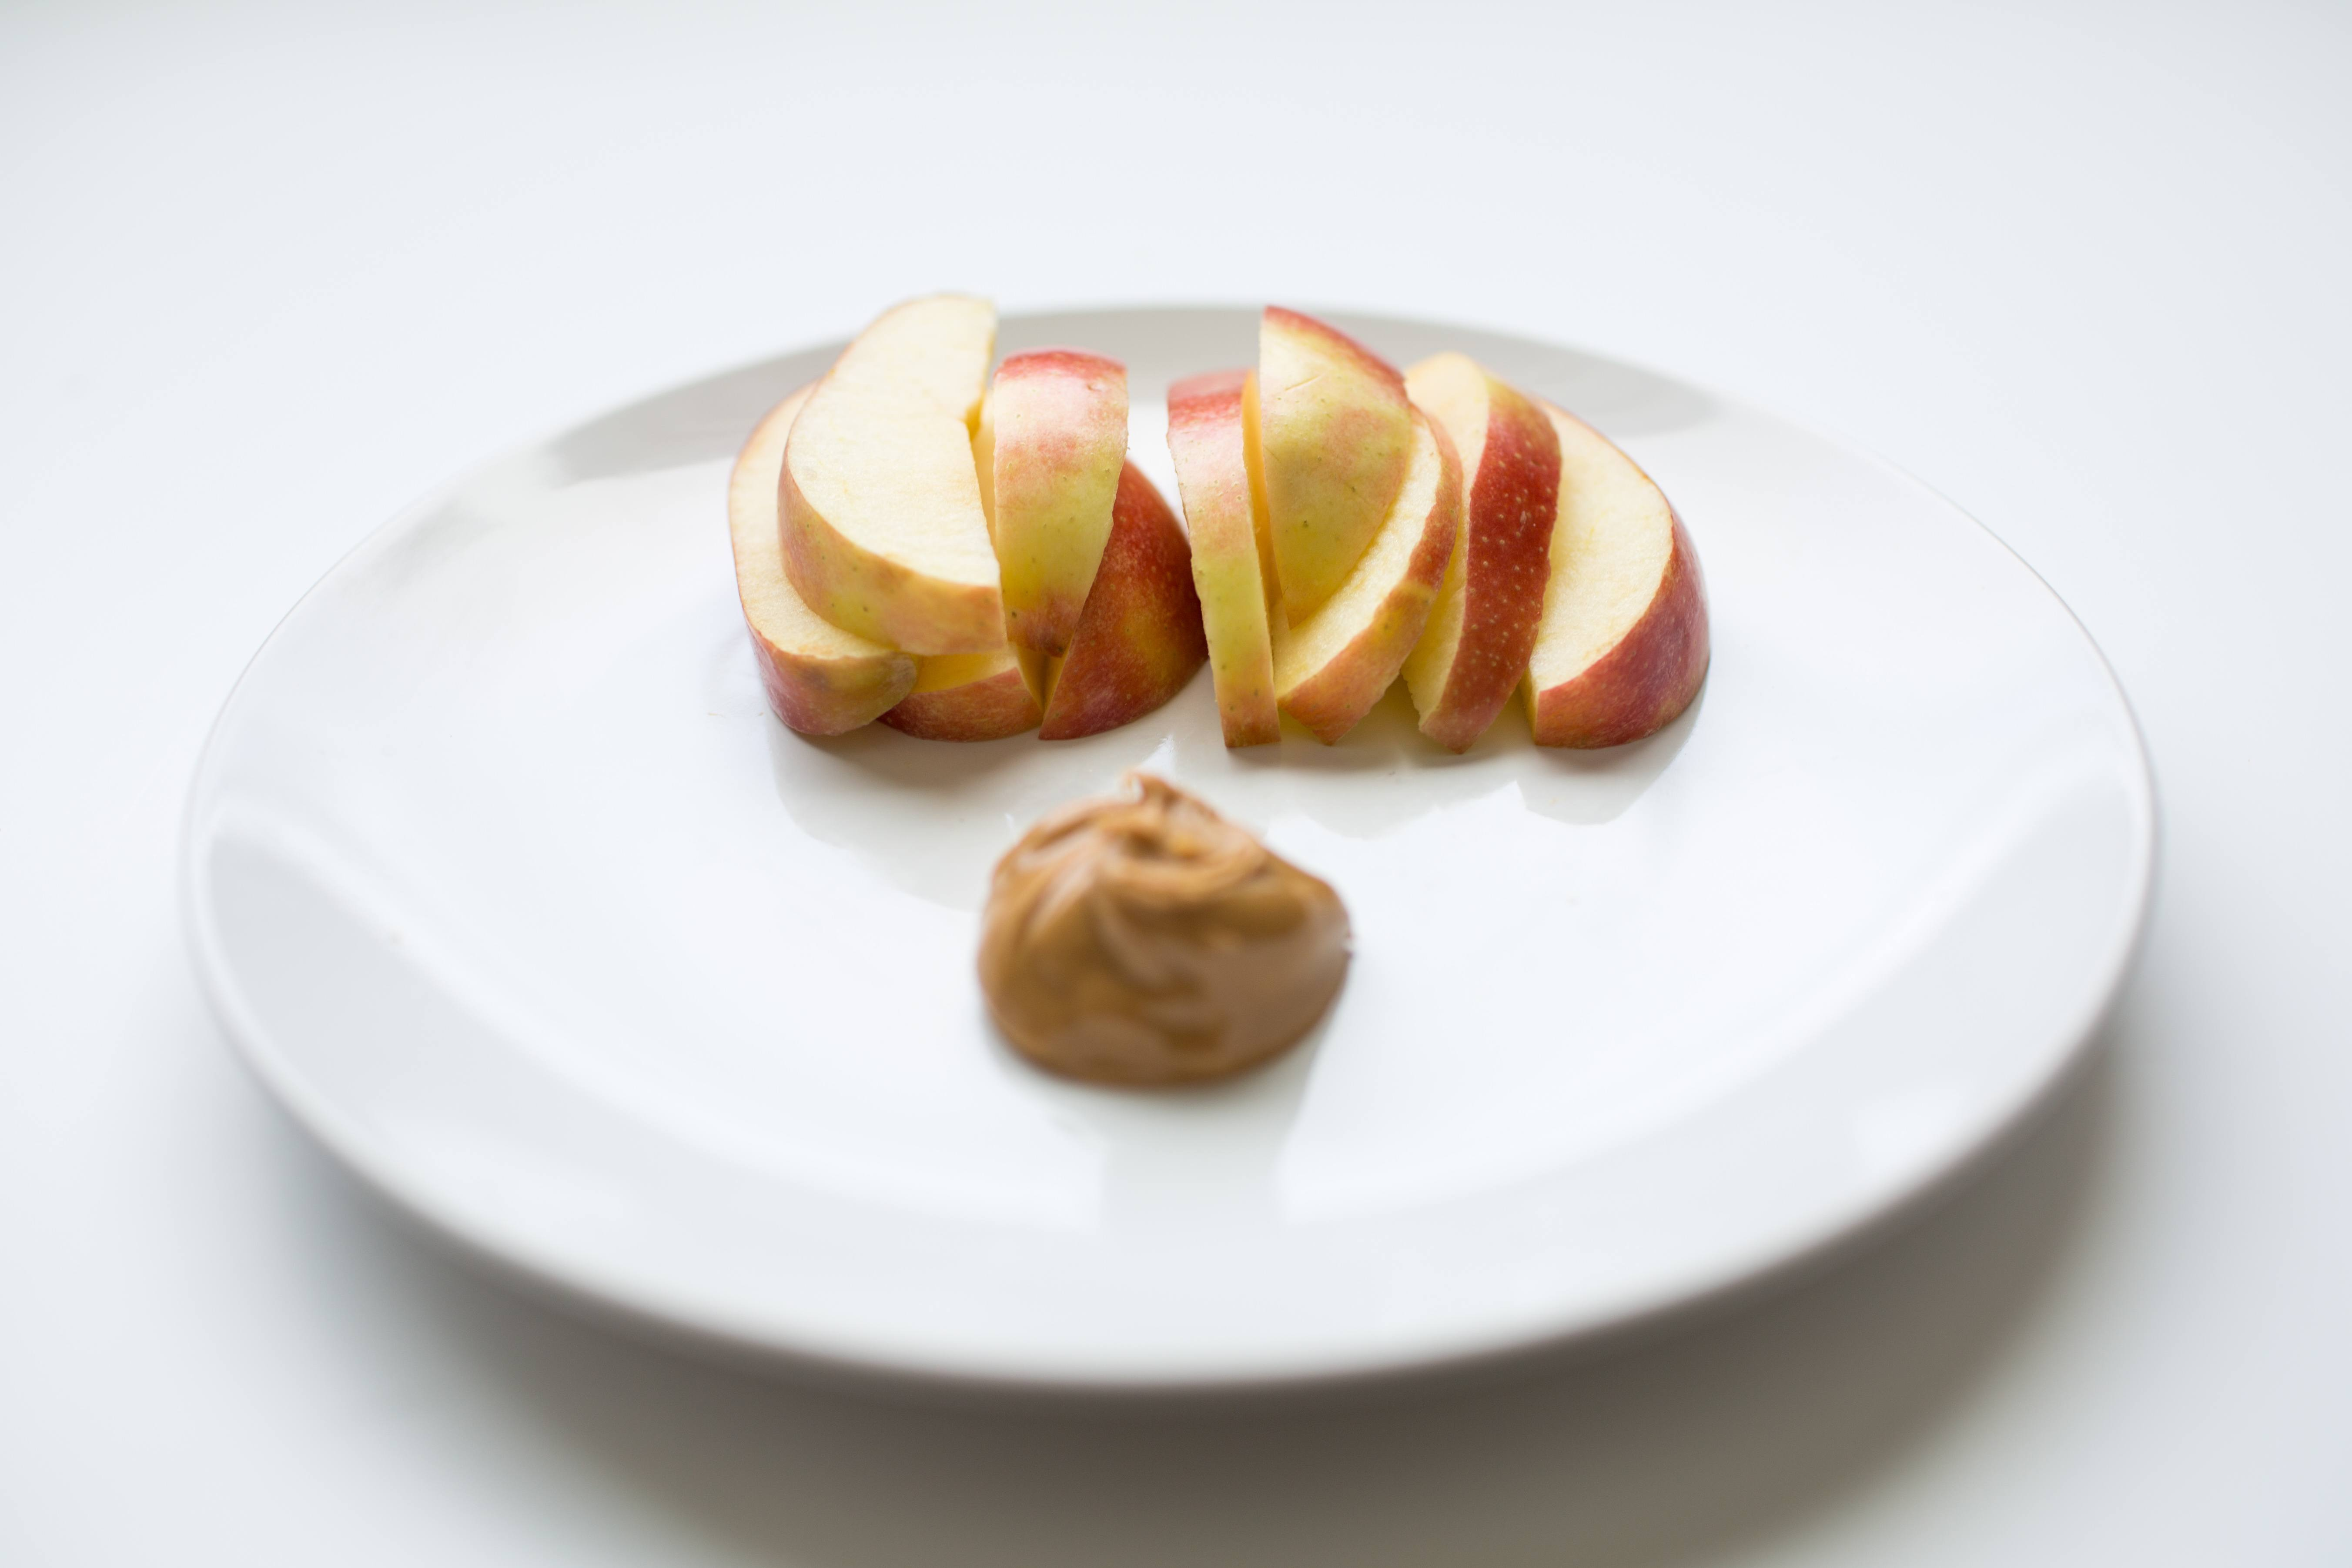 100 calorie snack apple slices and peanut butter